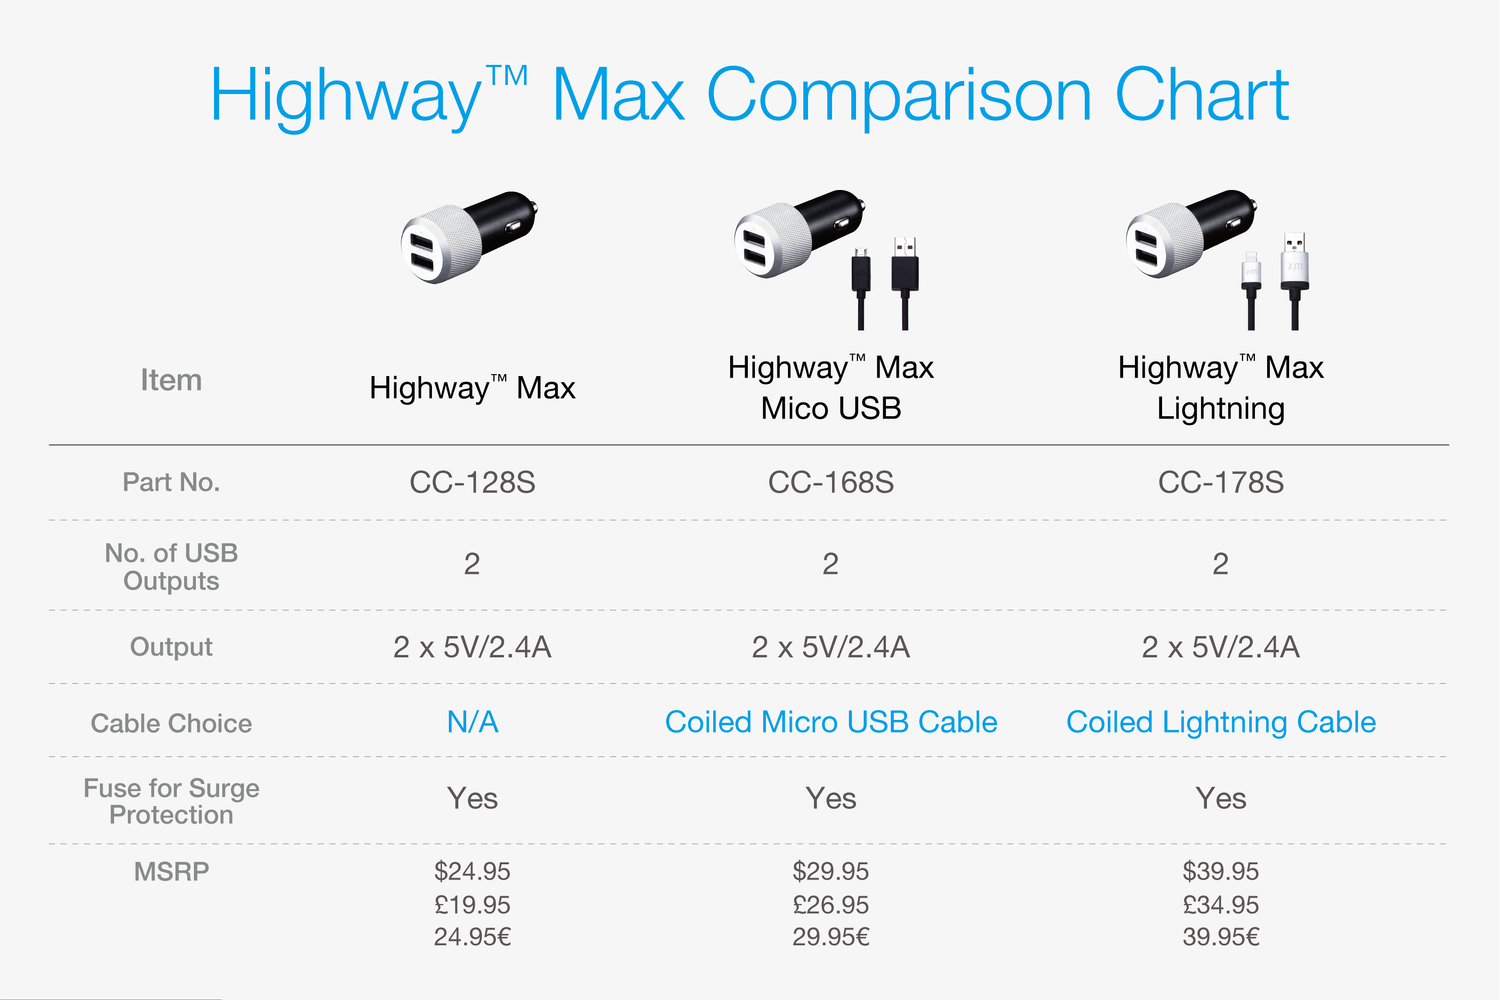 Highway™ Max with Micro-USB Cable